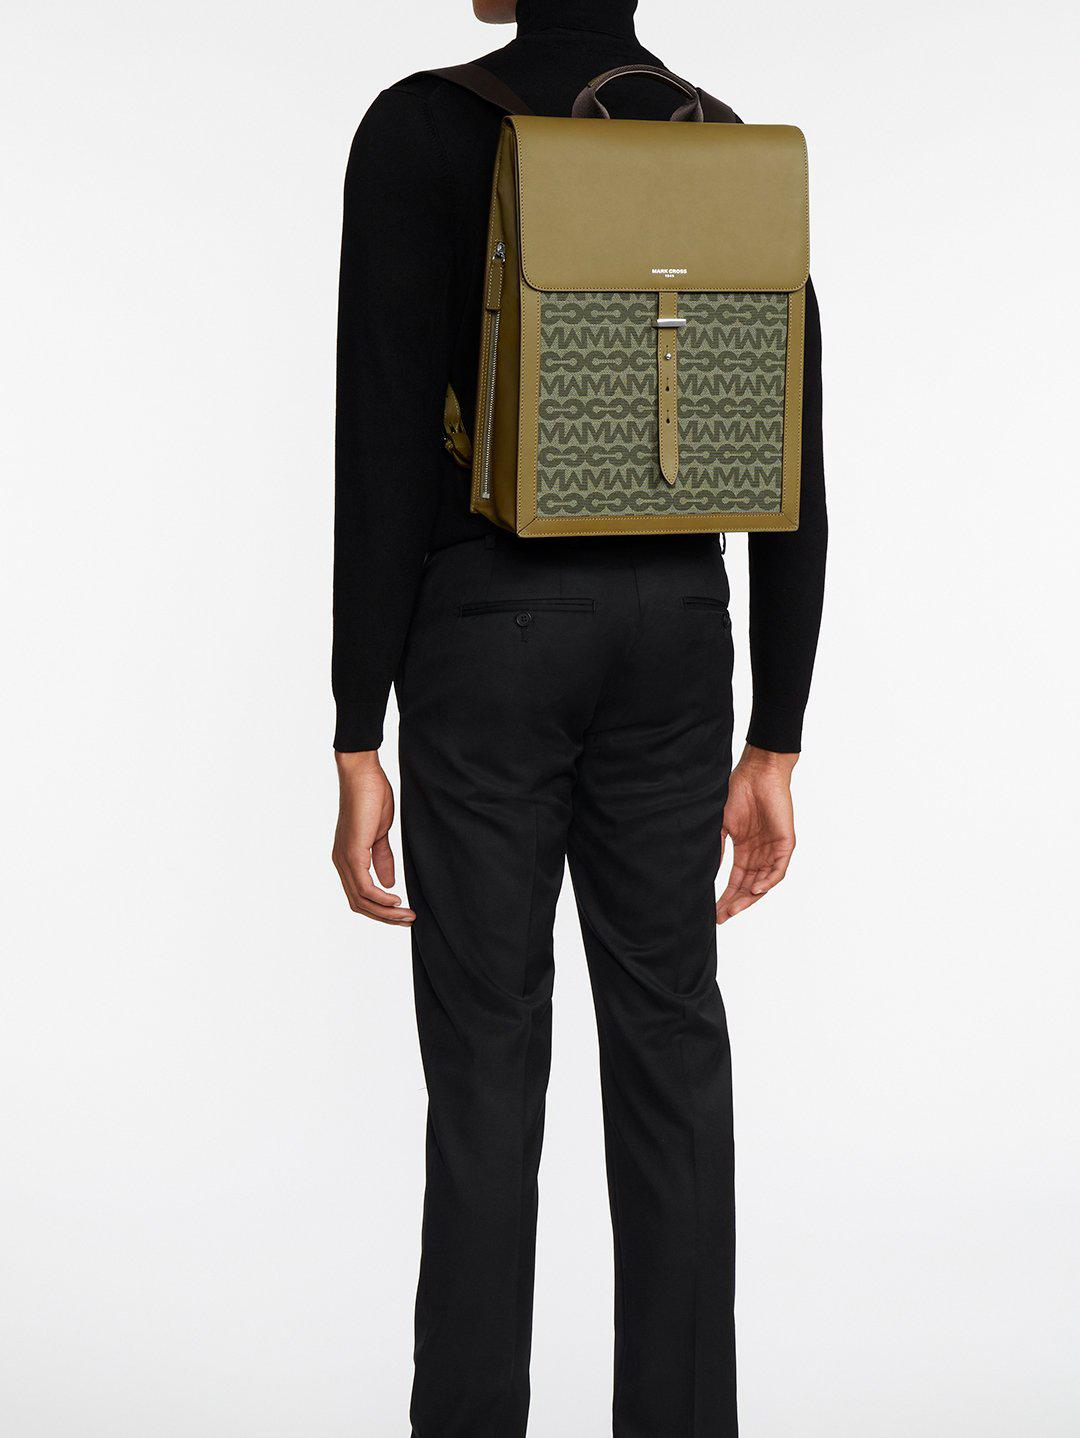 Andy MC Jacquard & Leather Backpack 7